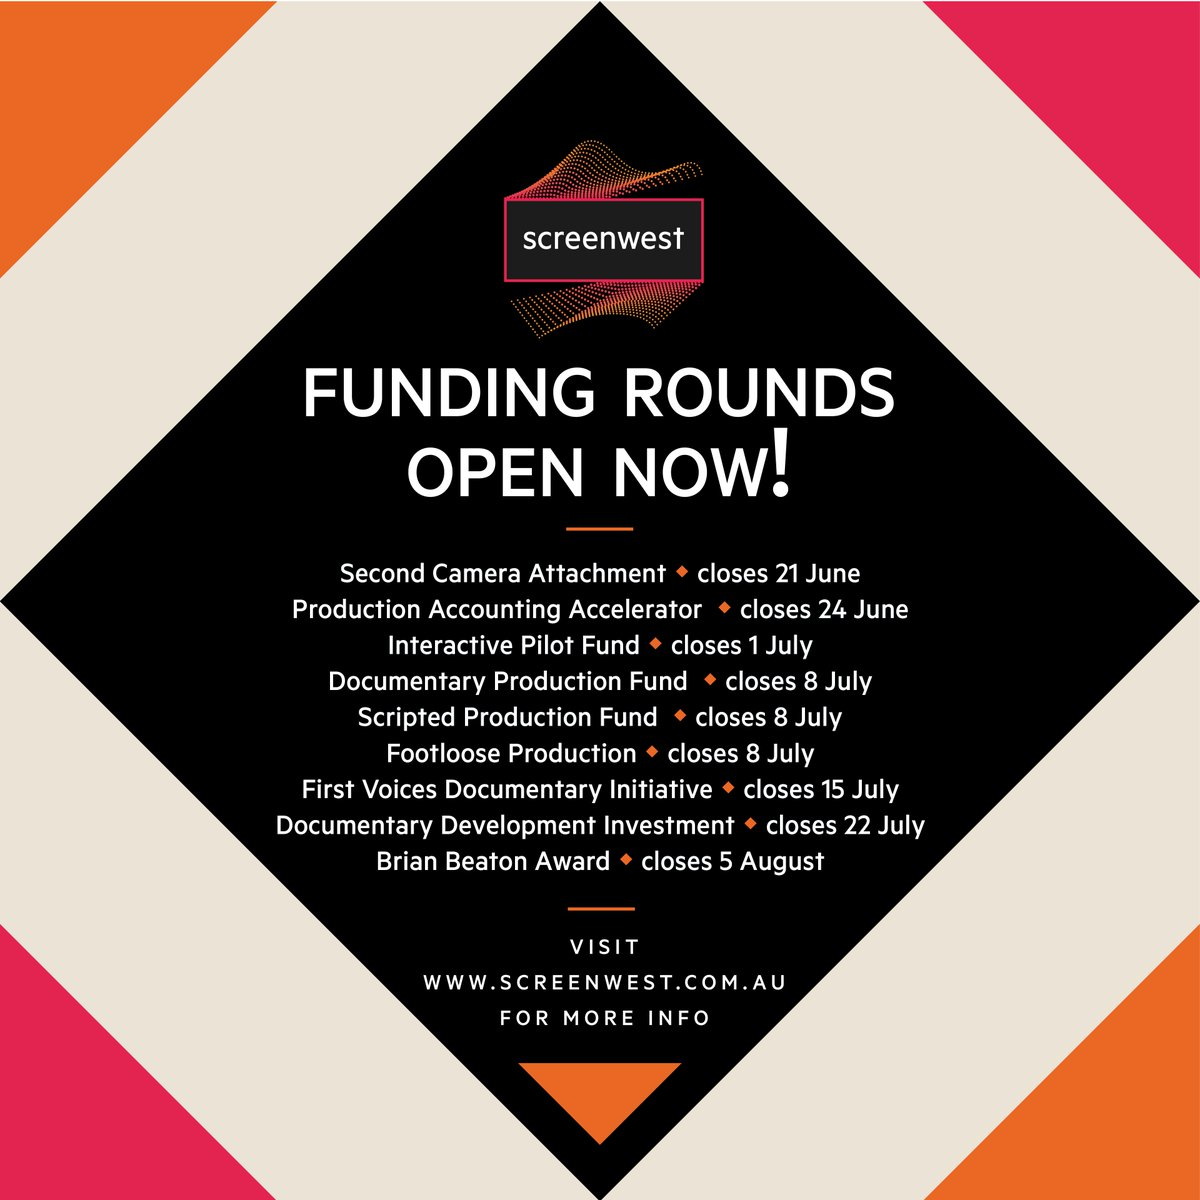 ‼️ OPEN ROUNDS ‼️  21/6 🎥 2nd Camera Attachment 24/6 🧮 Production Accounting Accelerator 1/7 🎮 Interactive Pilot Fund 8/7 🎬 Doco, Scripted & Footloose Production 15/7 ☀️ First Voices 22/7 ✍ Documentary Development 5/8 🏆 Brian Beaton Award  https://www.screenwest.com.au/funding-support/…